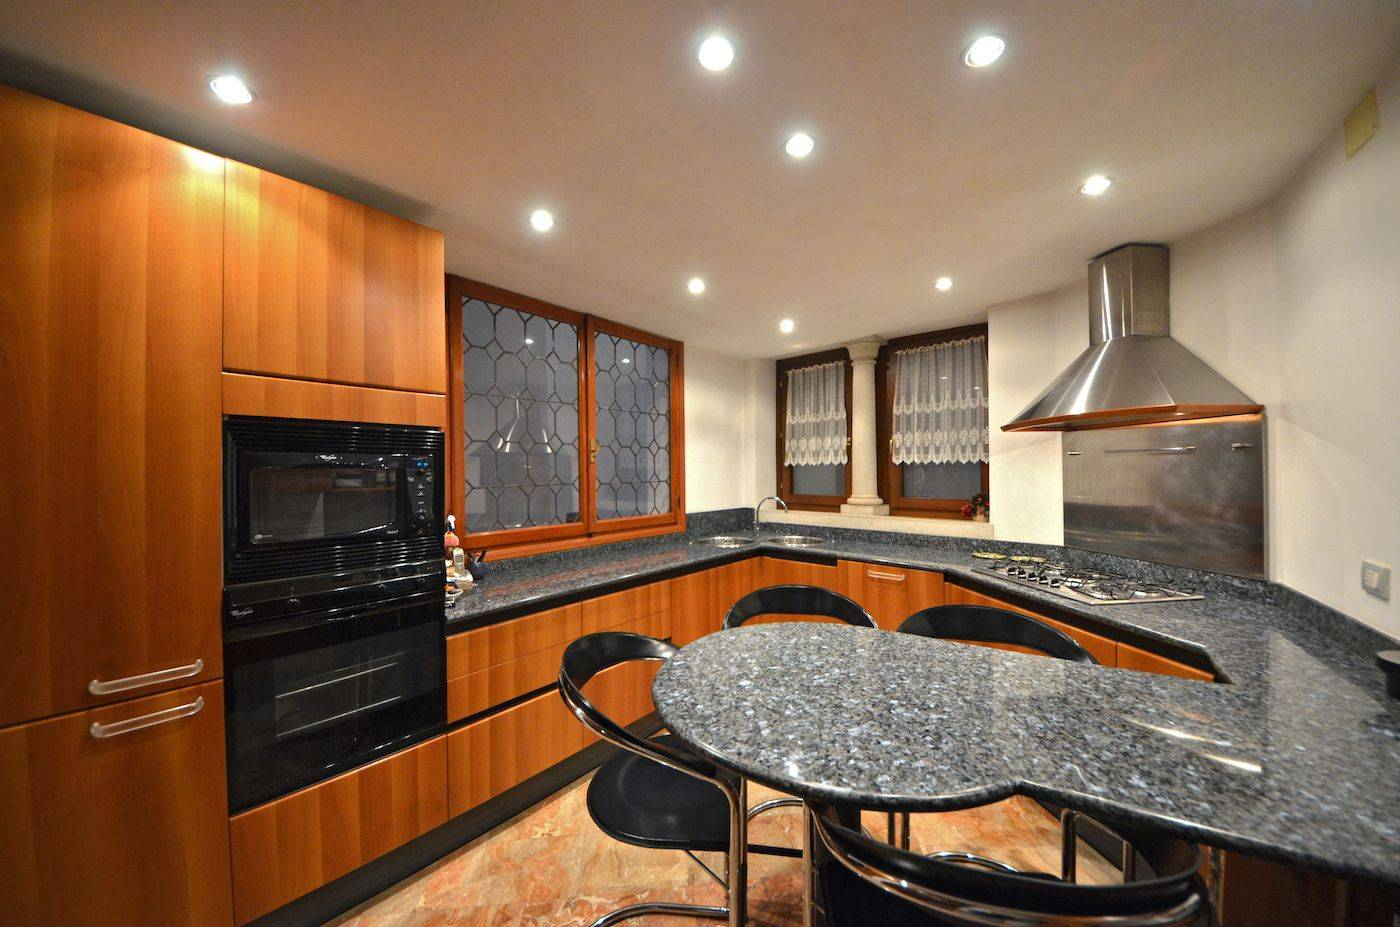 practical and fully equipped kitchen